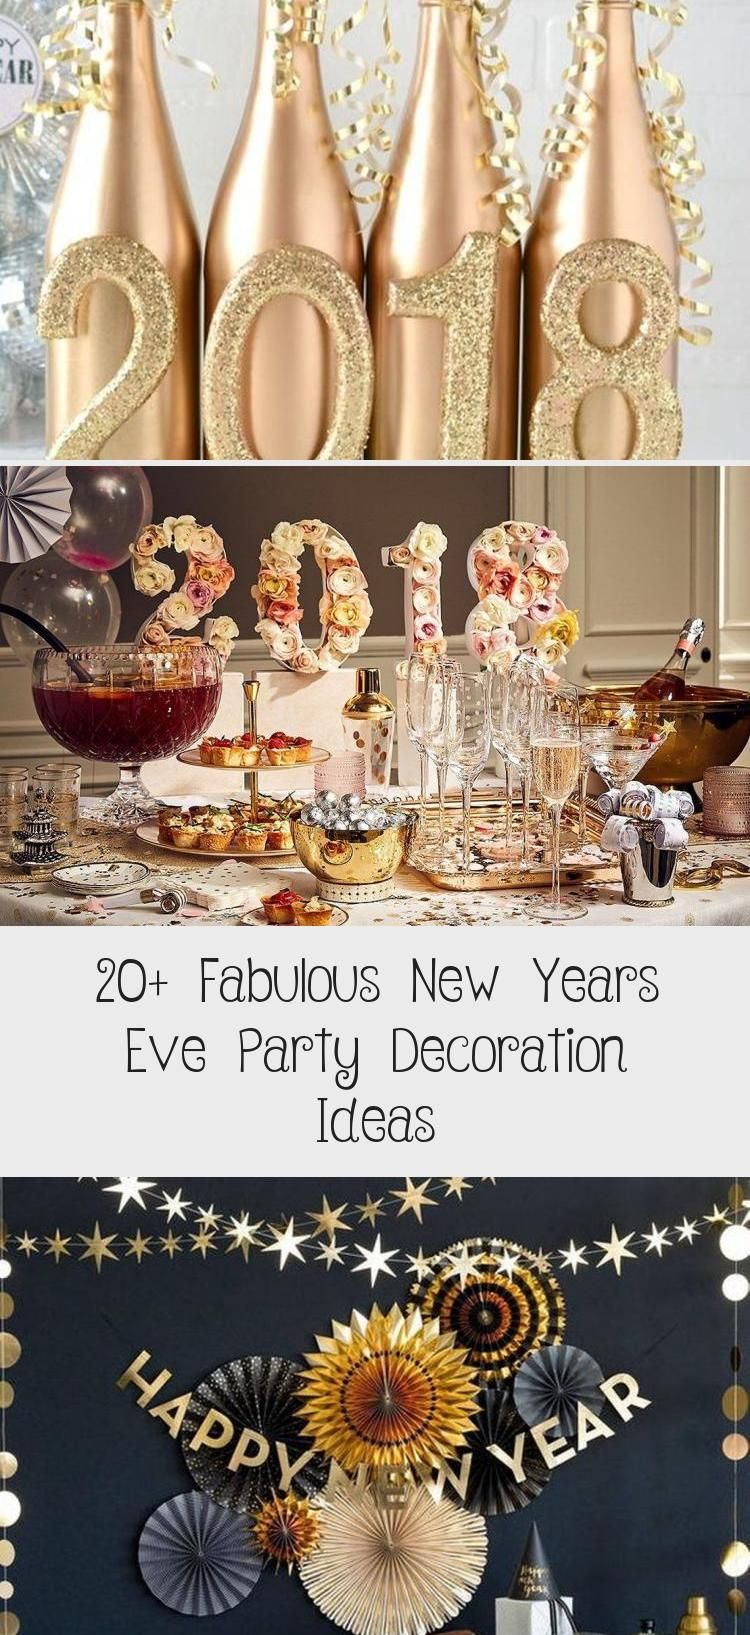 PartyDecorations2020 in 2020 Party decorations, New